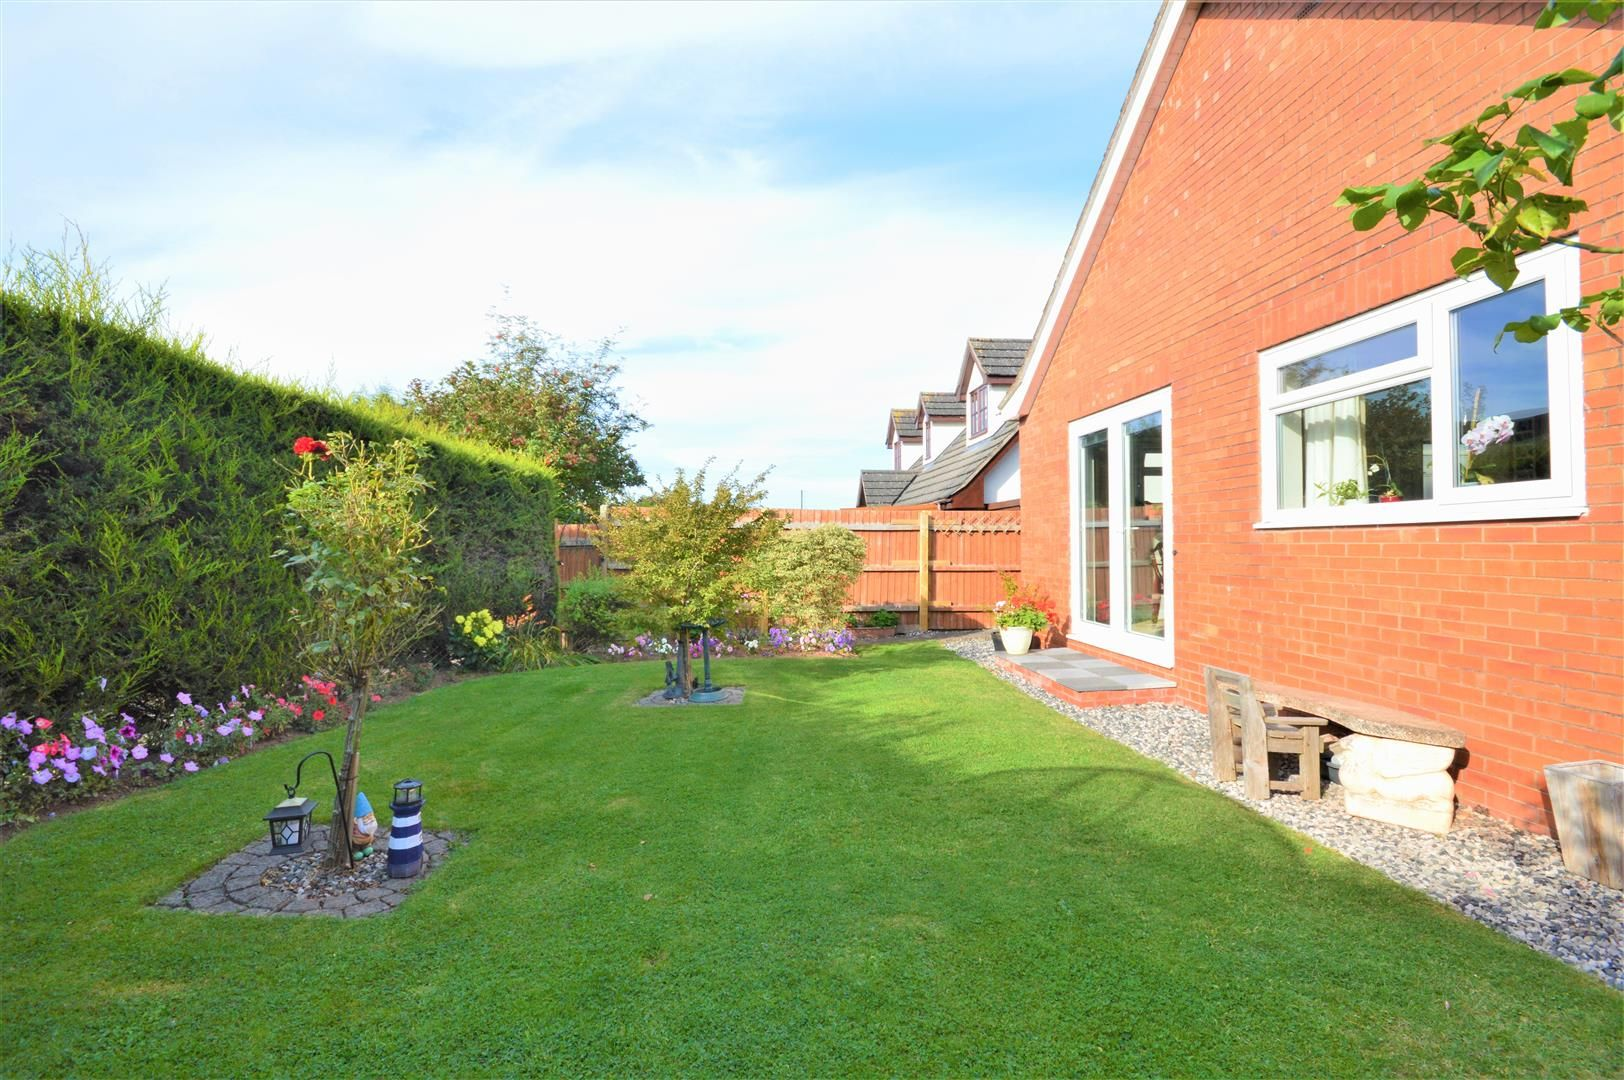 4 bed detached-bungalow for sale in Marden  - Property Image 12